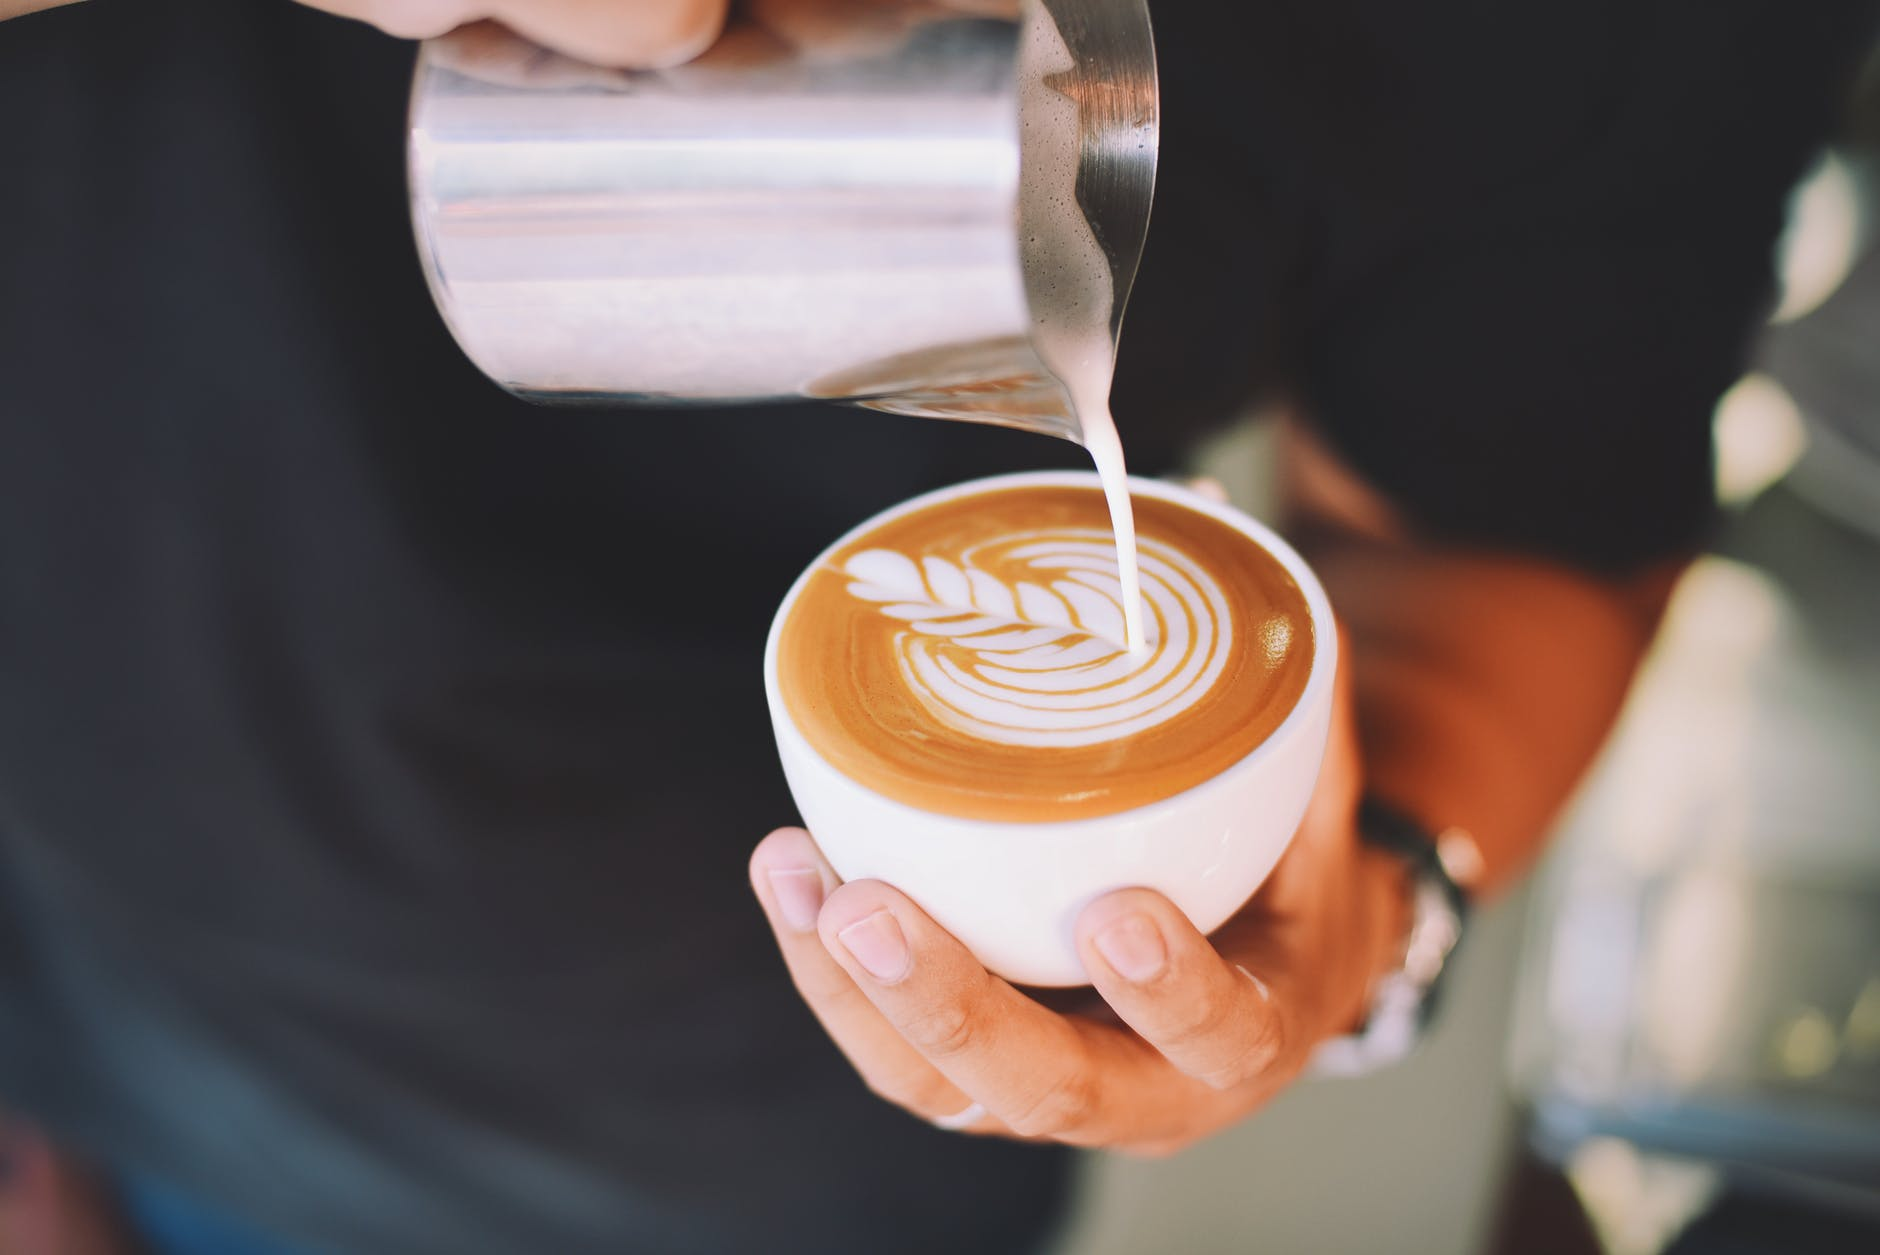 close up of hand holding cappuccino